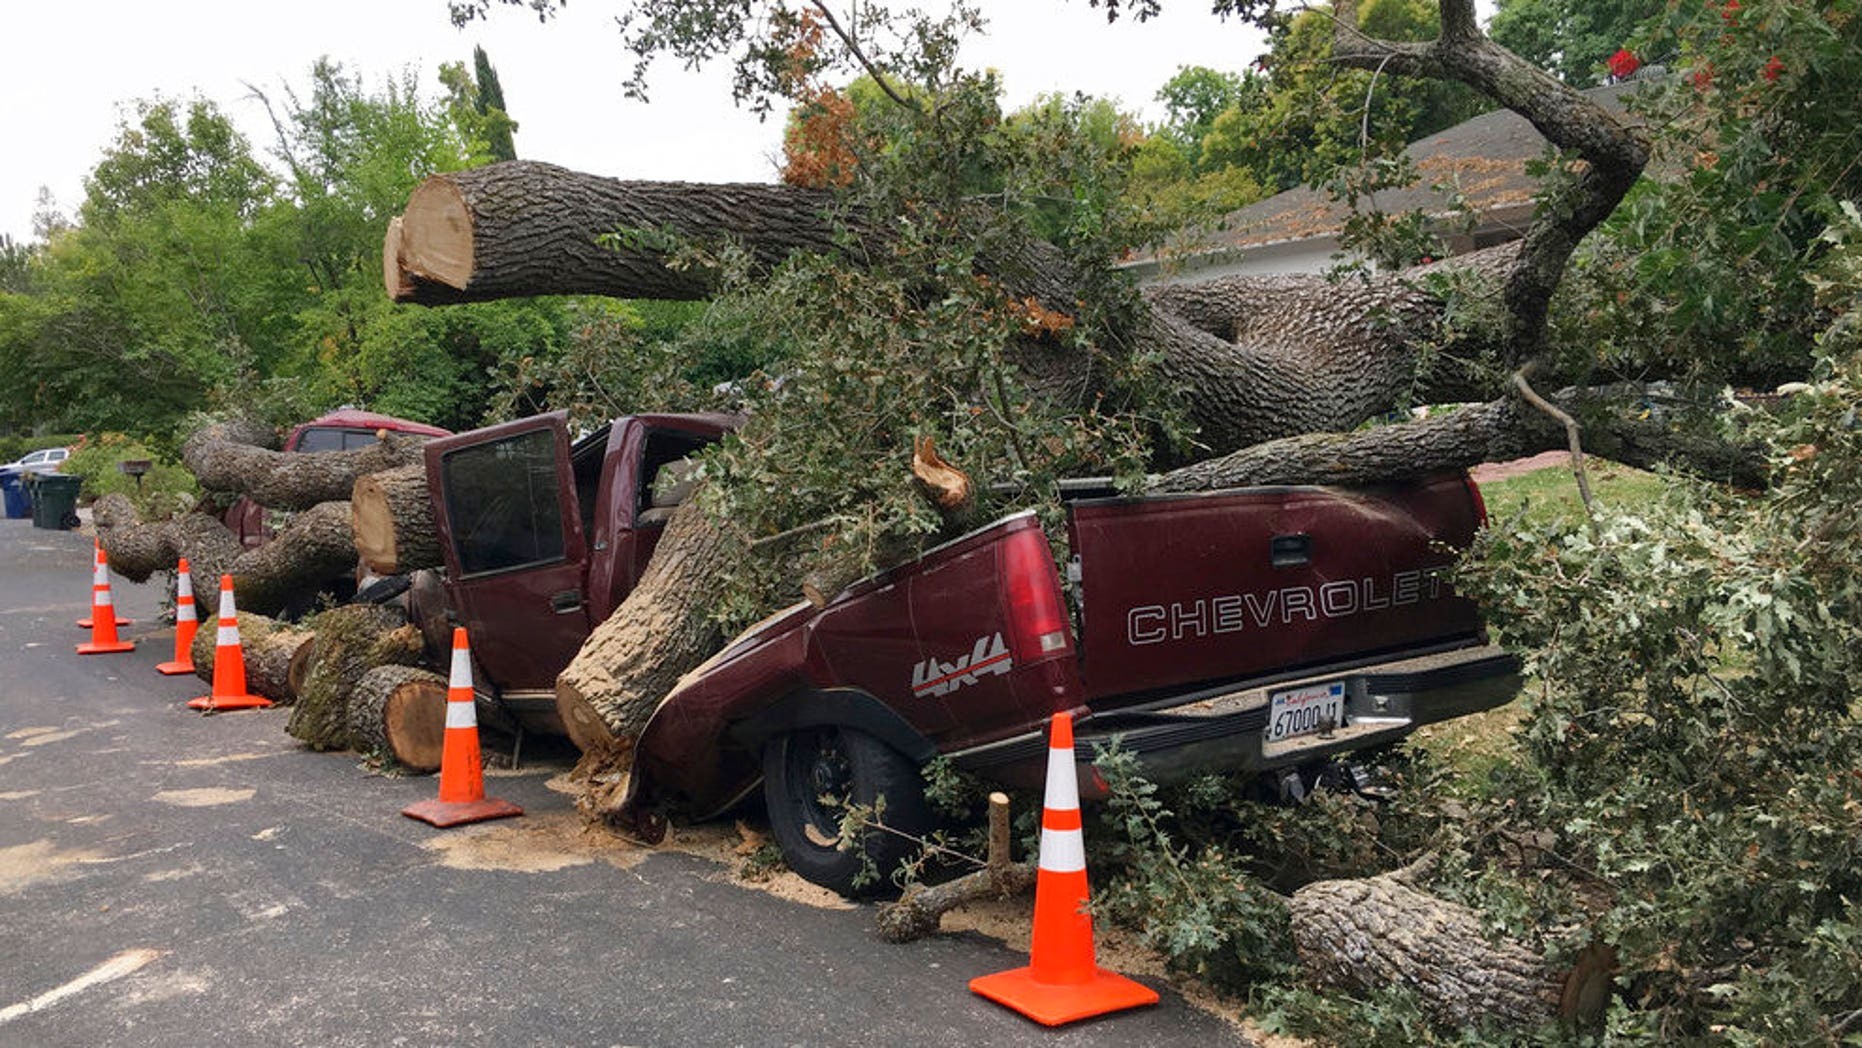 A centuries old massive oak tree came crashing down and crushed this truck after collapsing in a neighborhood in Pleasant Hill, Calif., Thursday, Aug. 30, 2018. Several parked vehicles were destroyed when the tree fell overnight. (Rick Hurd/East Bay Times via AP)